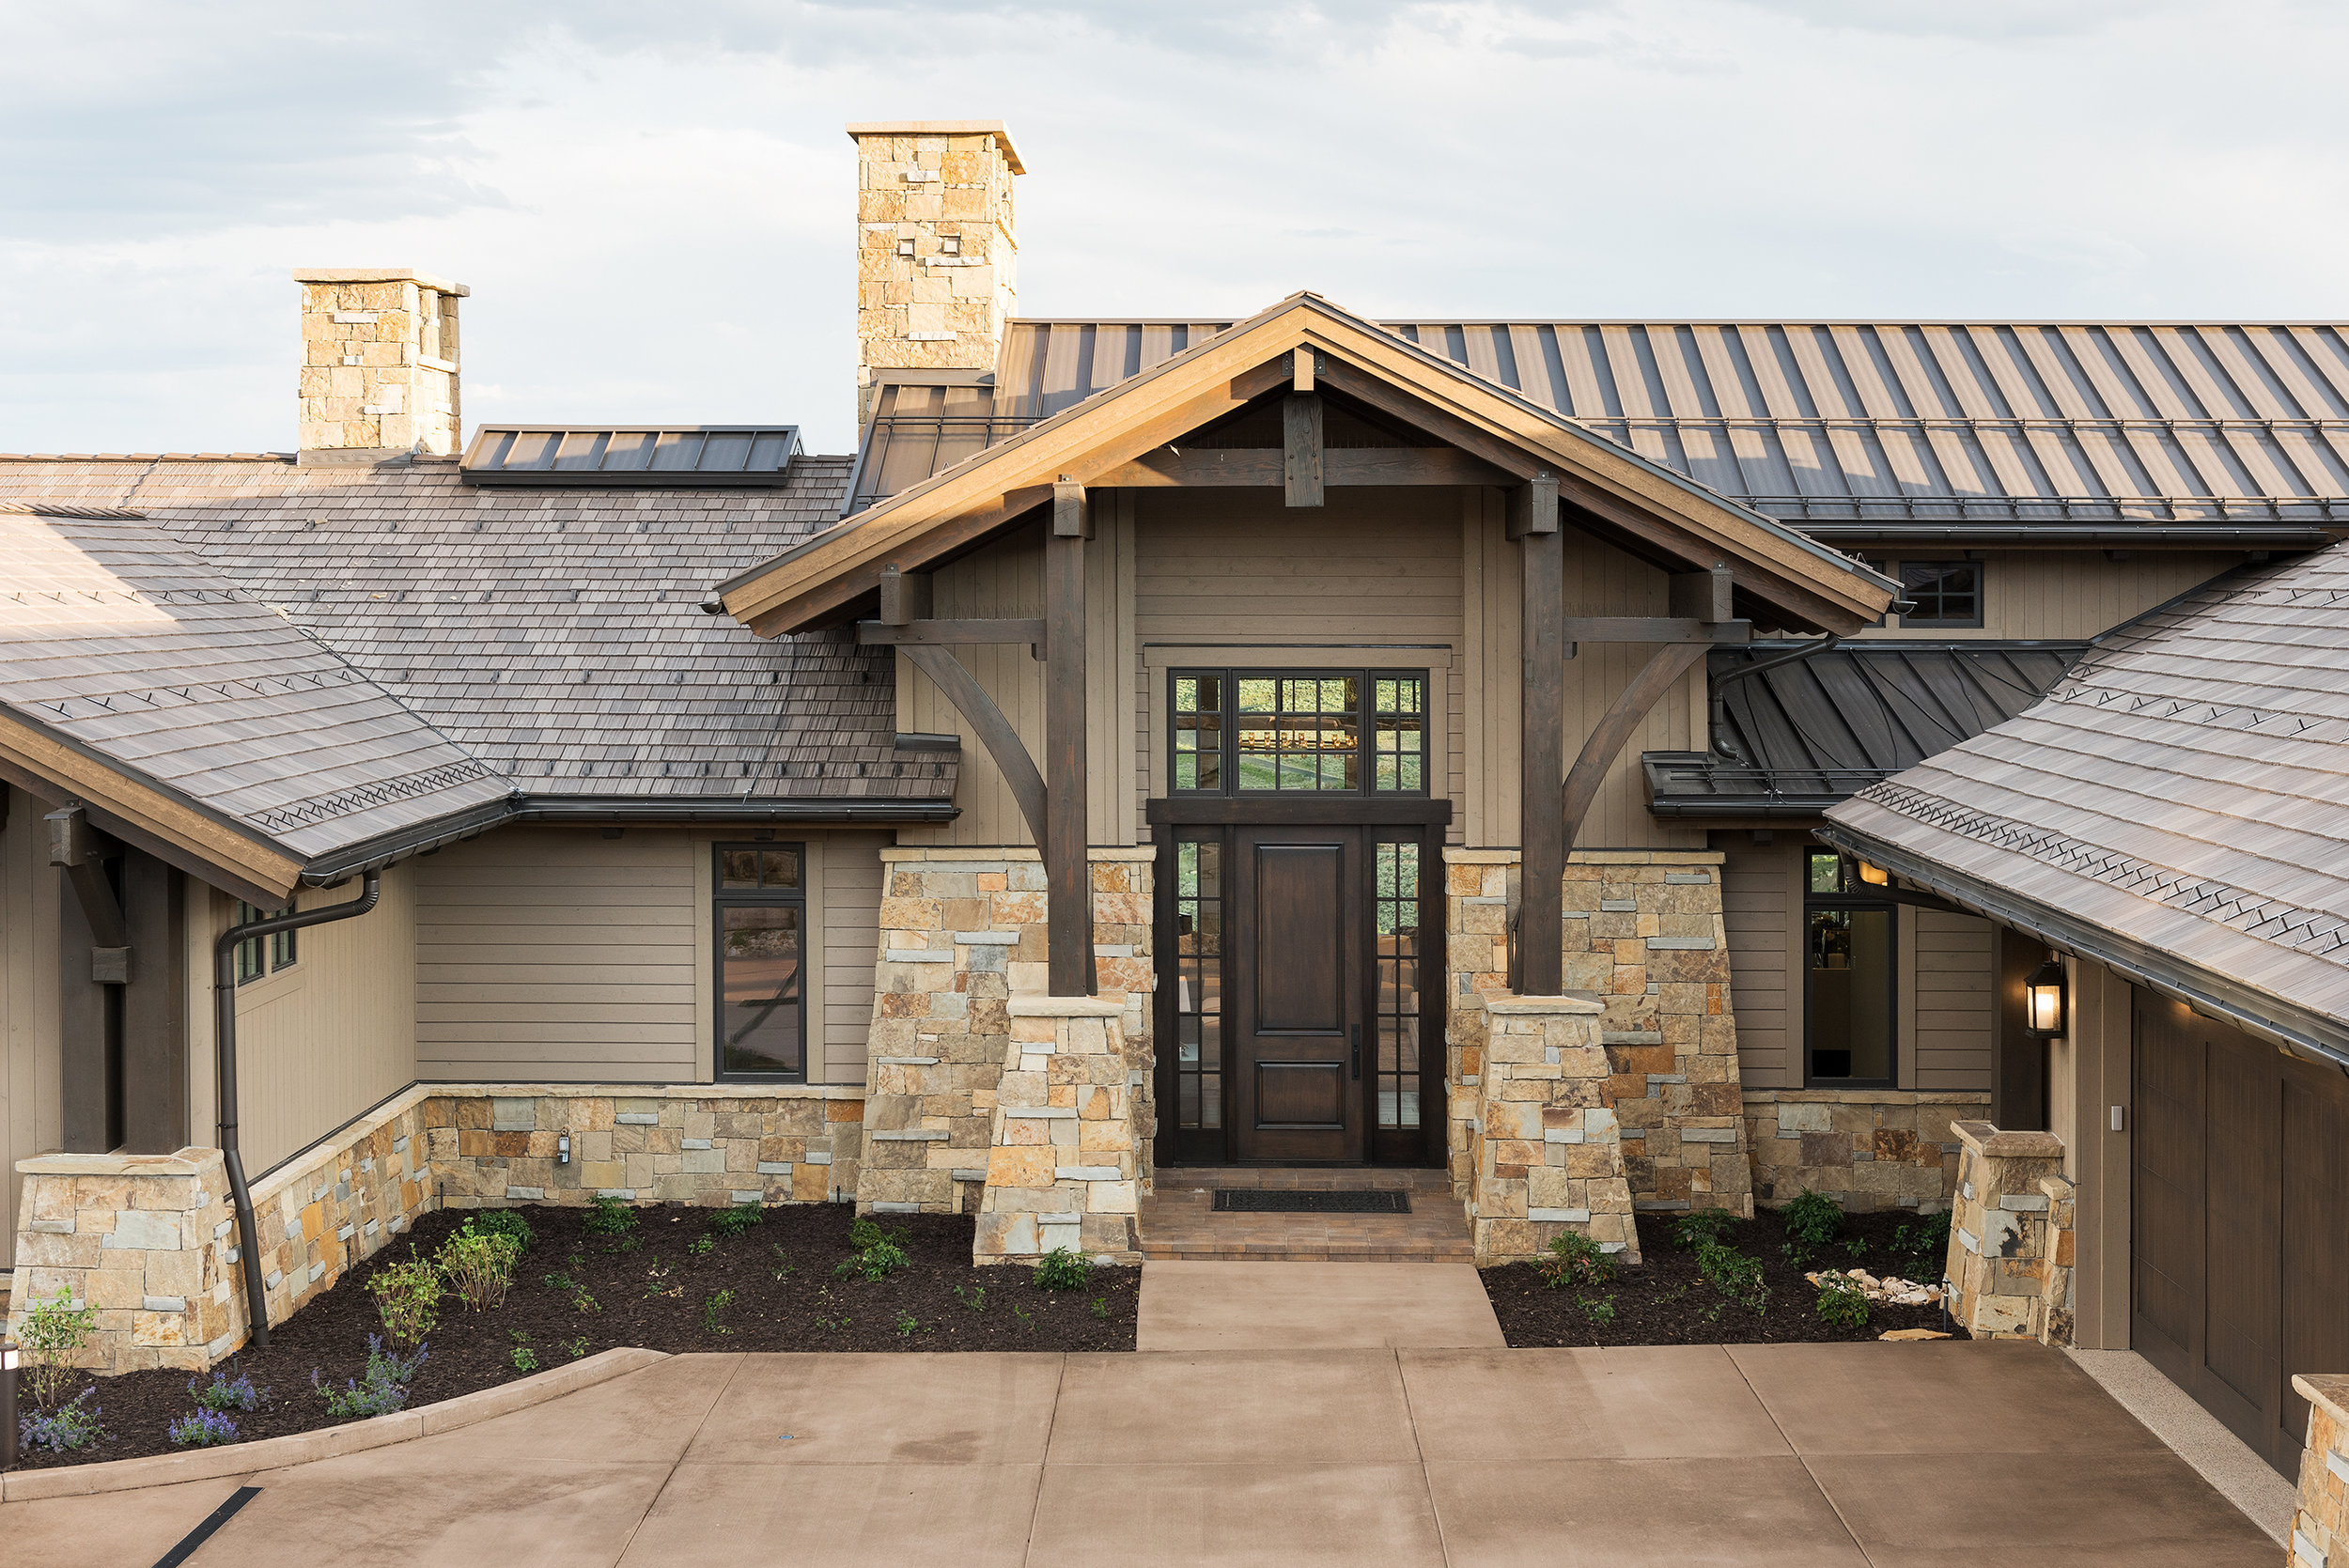 The beautiful exterior finishes were created and planned around the owners needs and dreams.